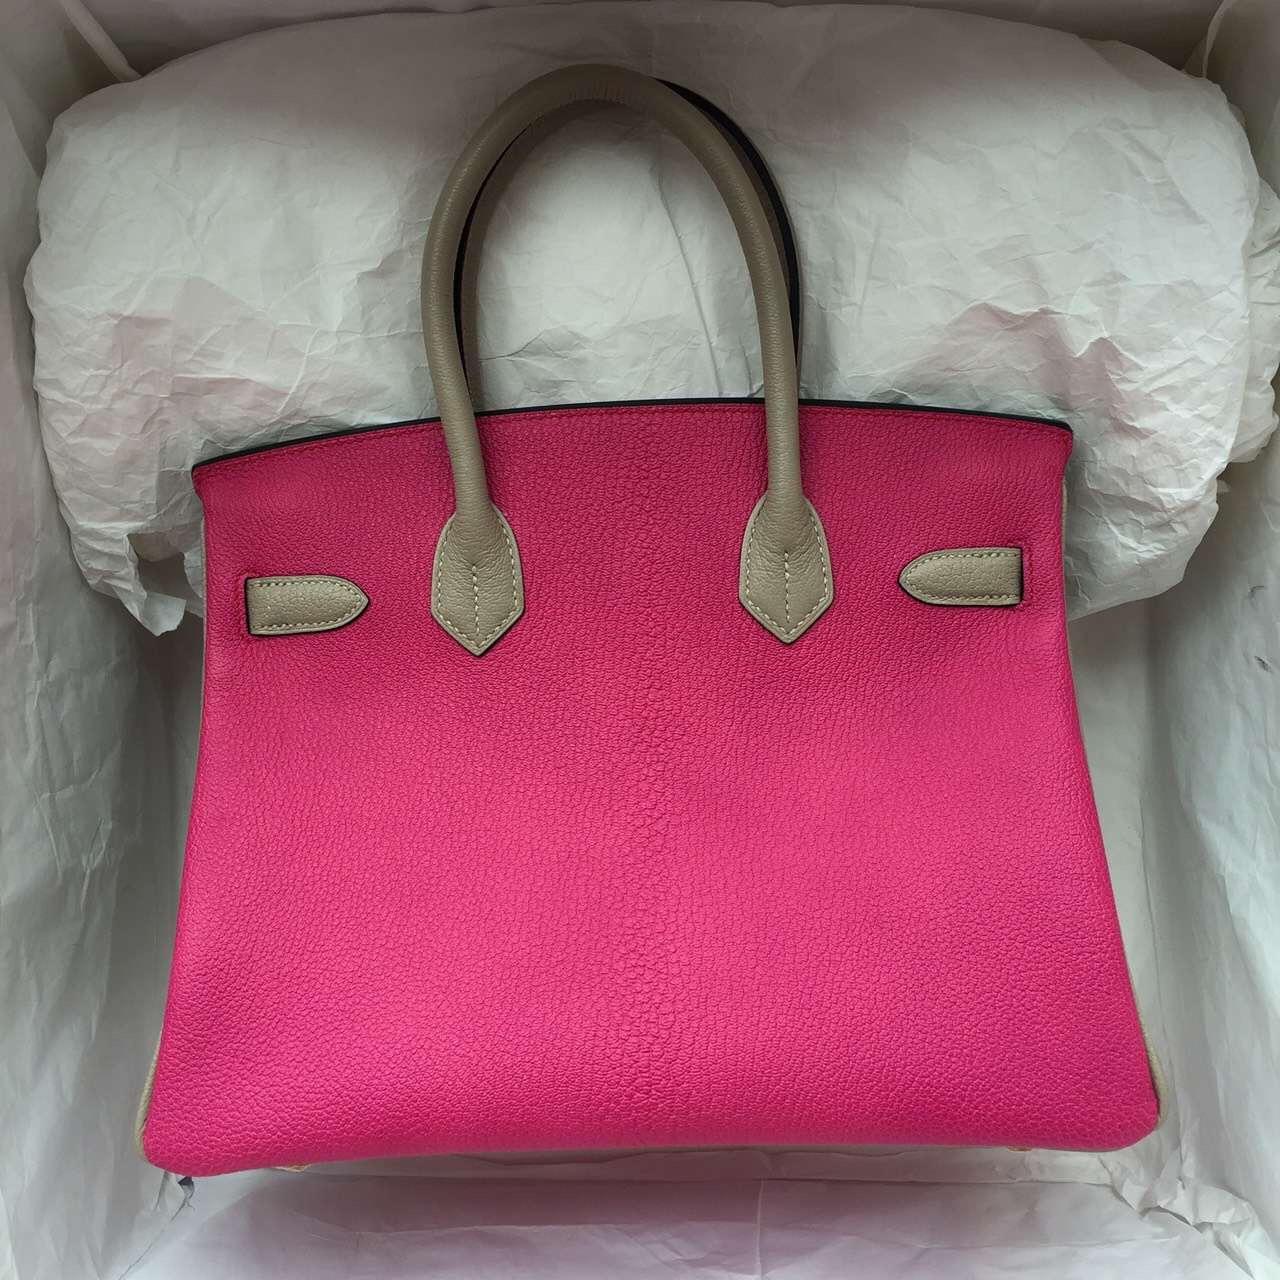 2015 New Fashion Hermes E5 Candy Pink & Tourterelle Grey Chevre Leather Birkin Bag 30CM